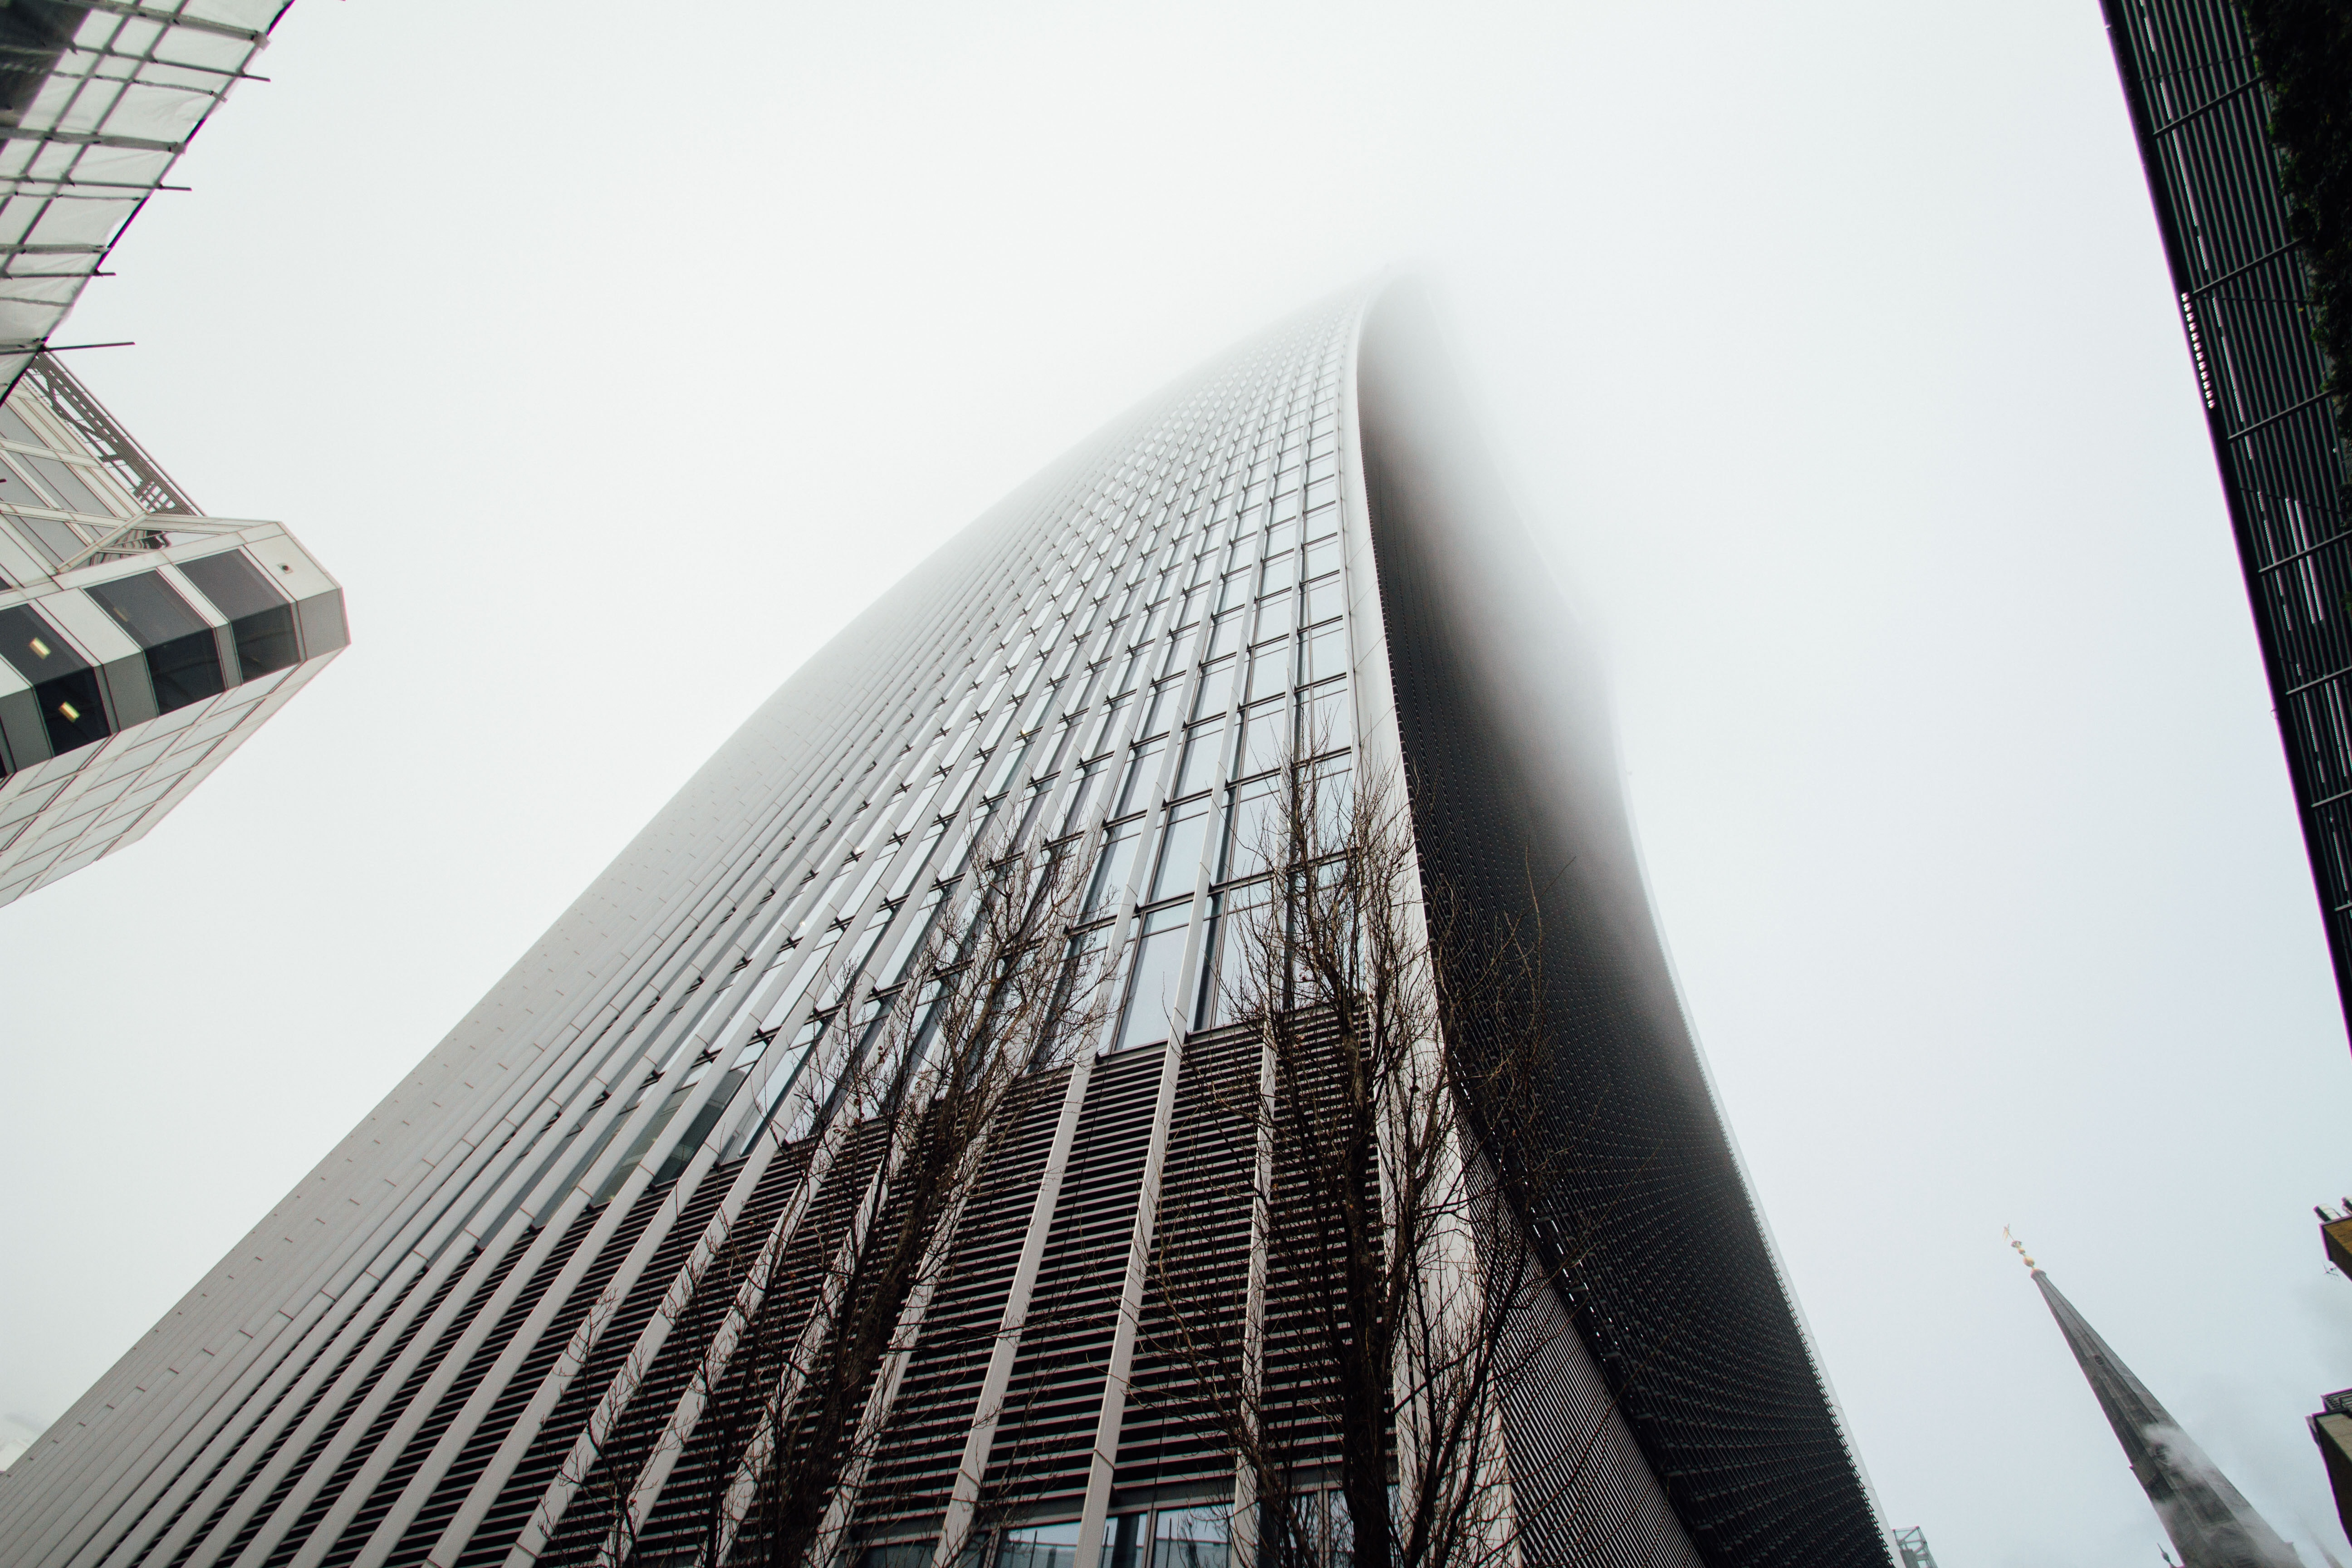 Low Angle View of Skyscrapers Against Sky, Holidays, Urban, Technology, Tall, HQ Photo